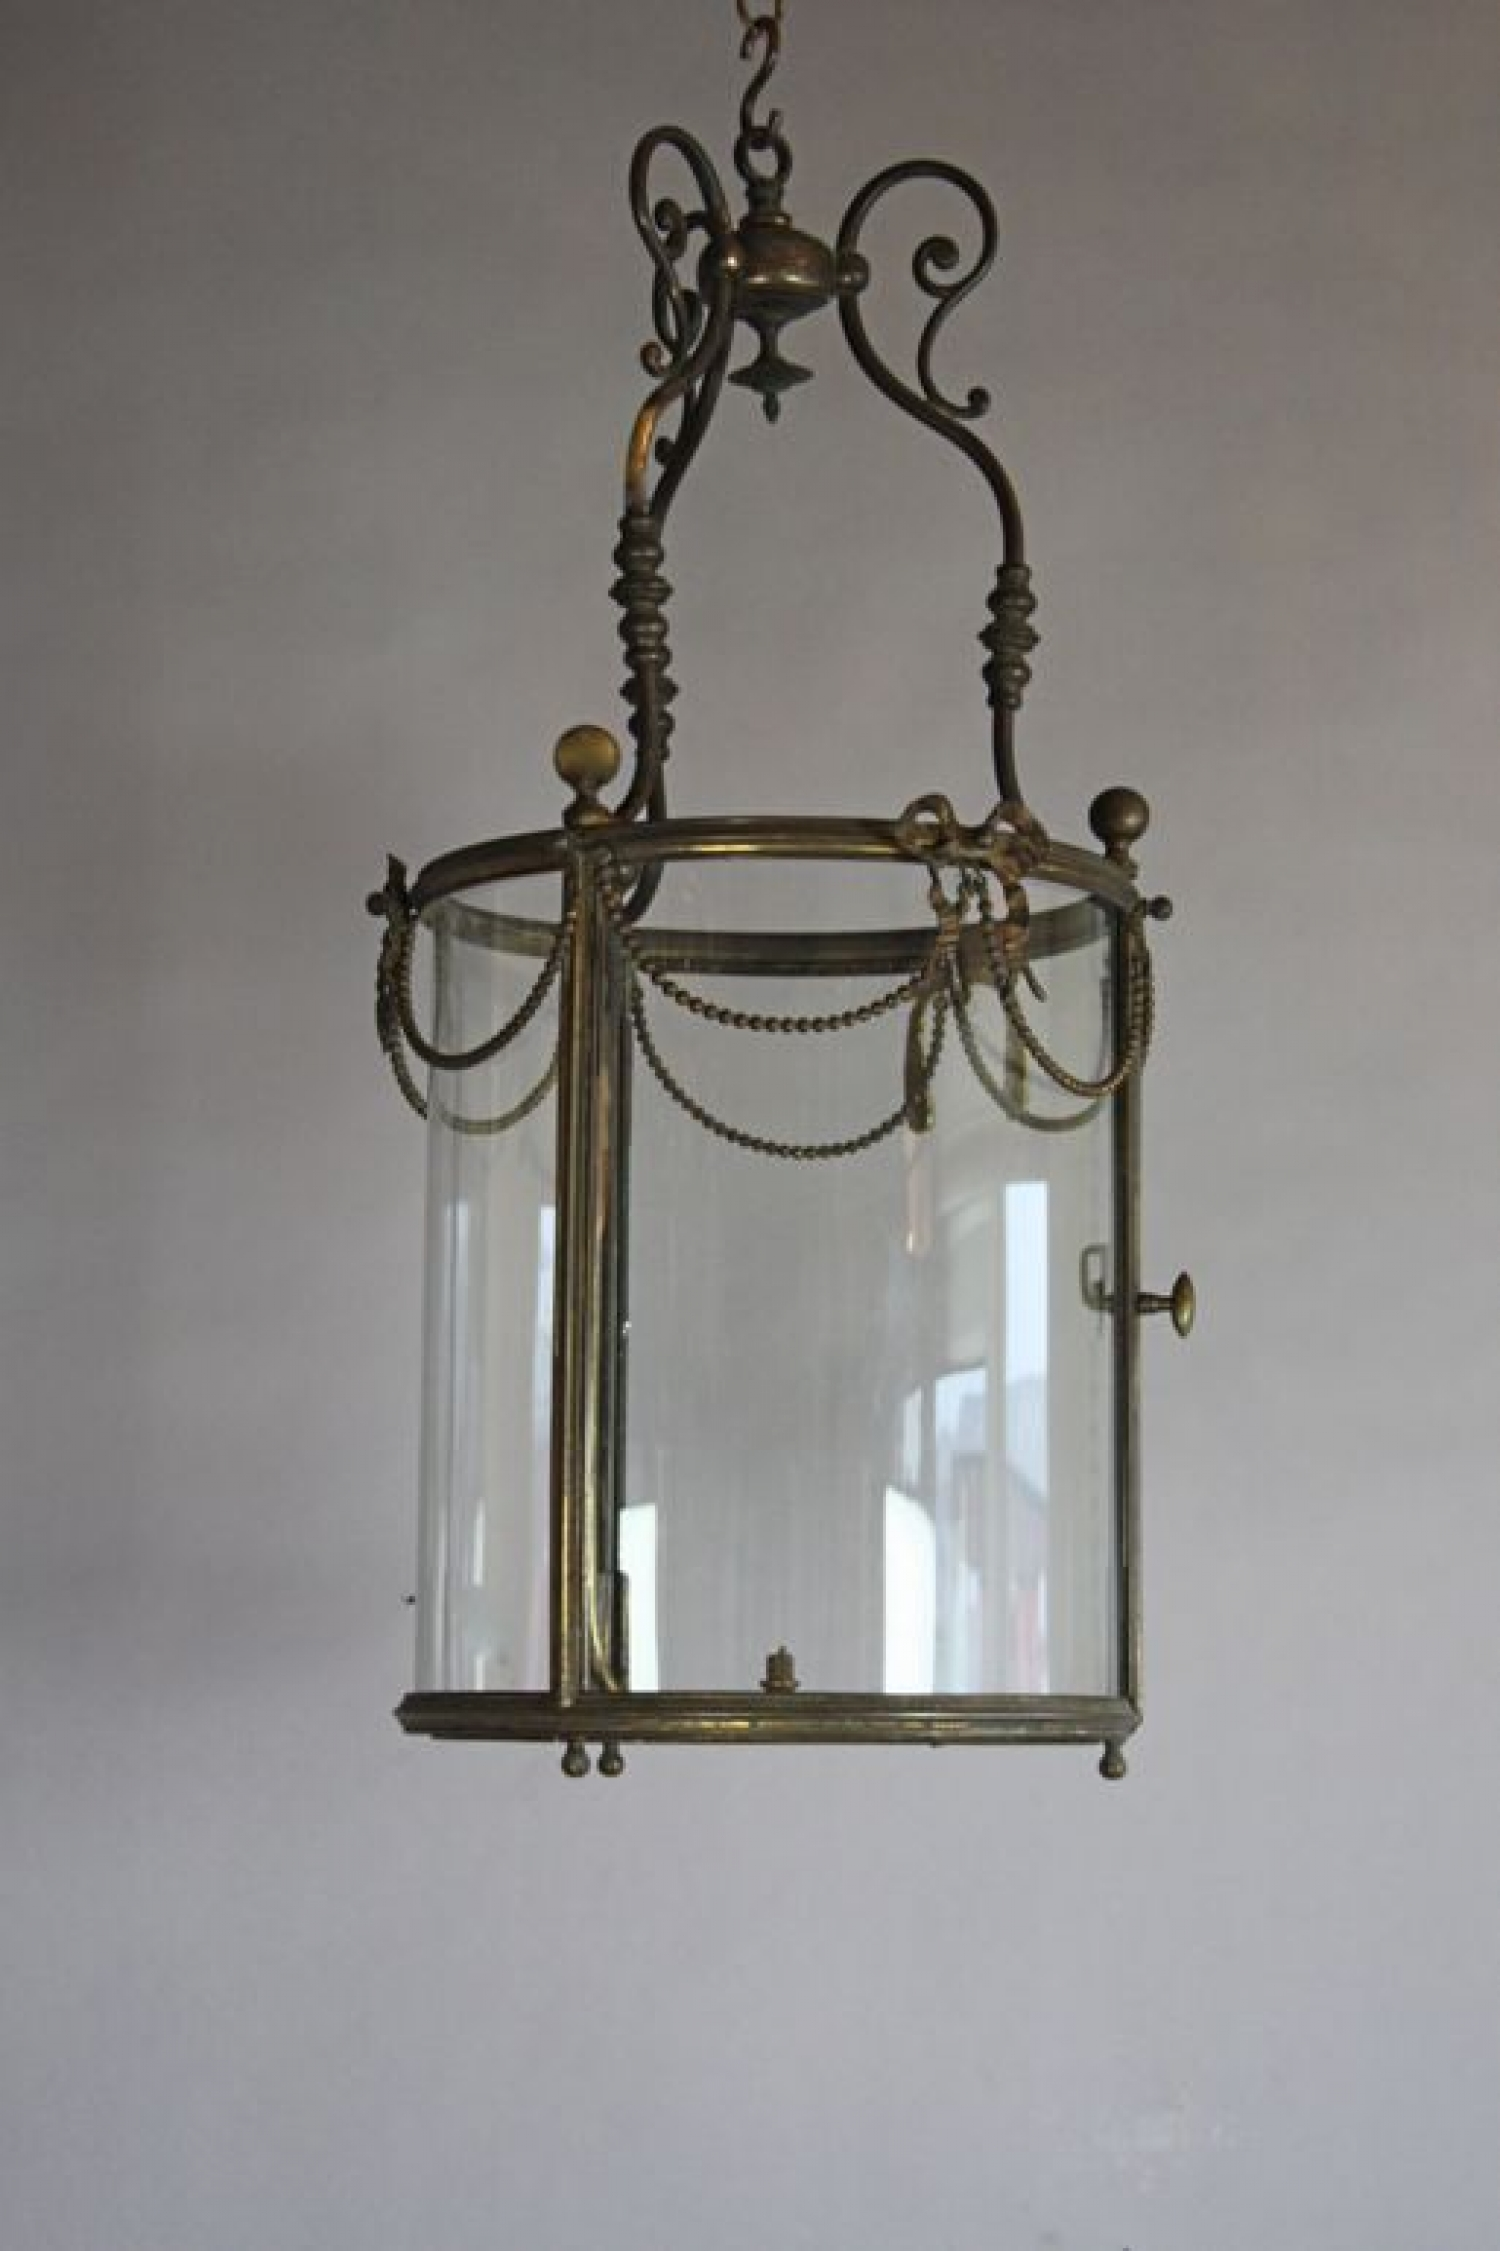 CONSERVATORY LIGHTING Norfolk Decorative Antiques - Wall lights, LED bathroom & bedroom lighting ...